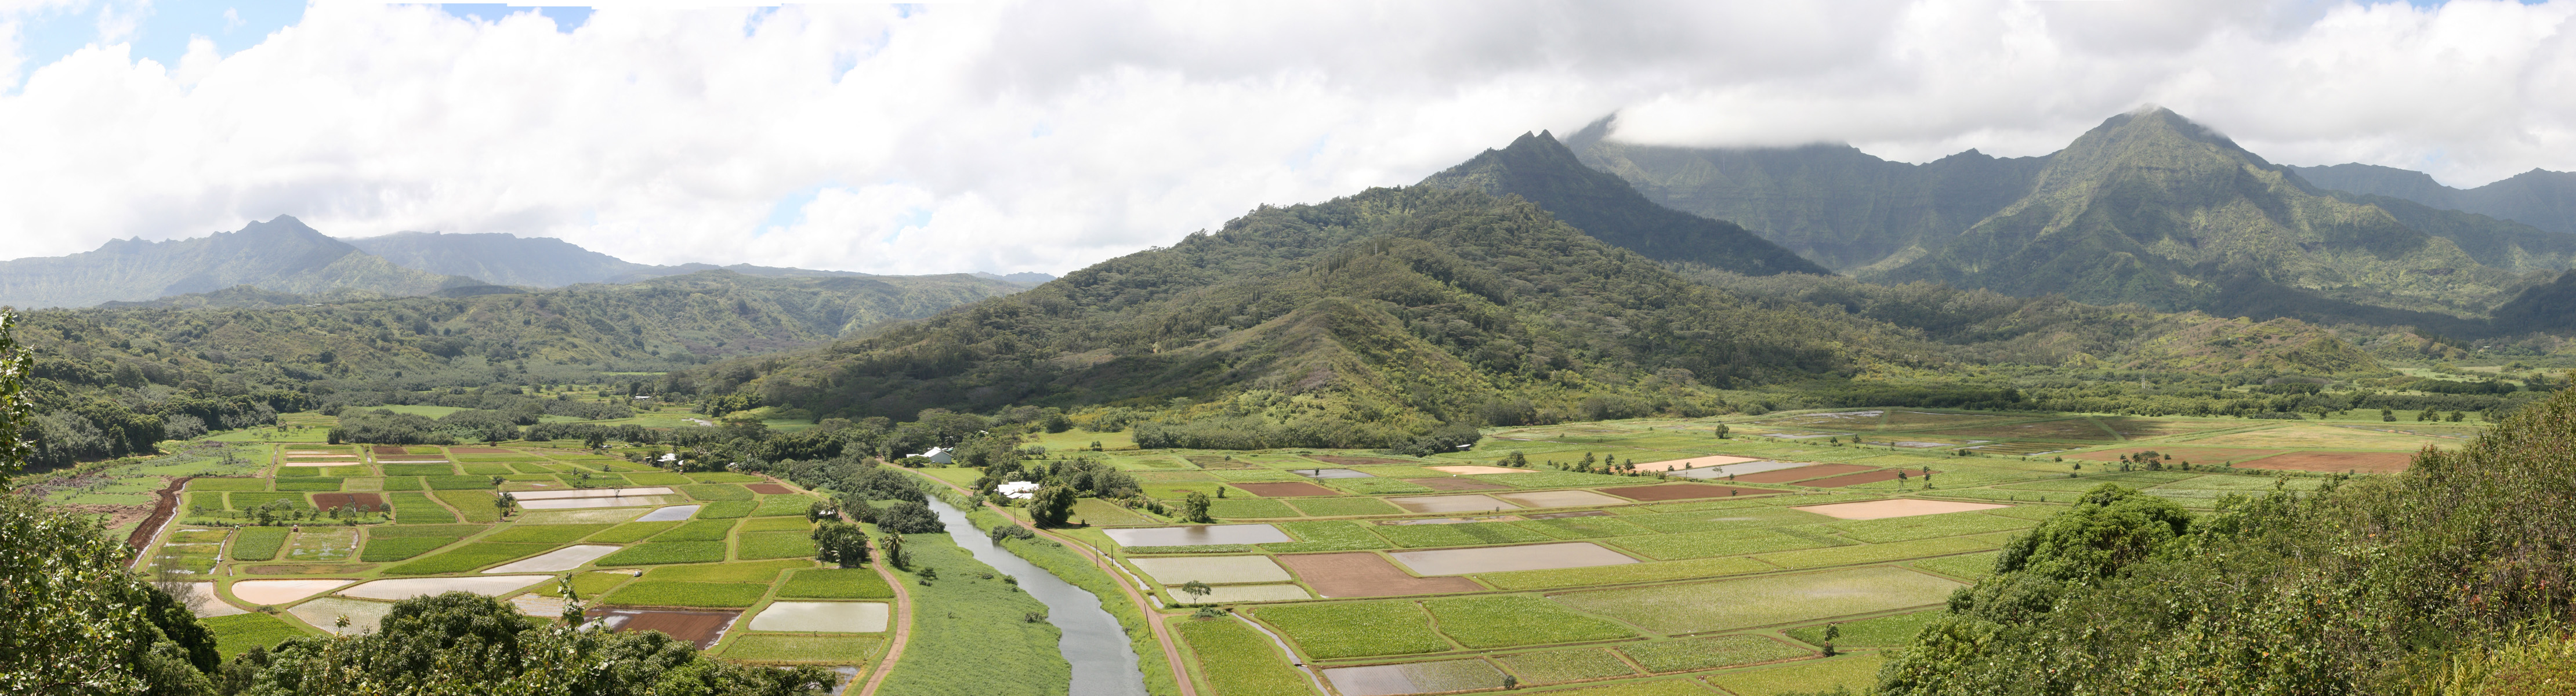 From Sugar to Monsanto: Today's occupation of Hawaii by the Agrochemical Oligopoly